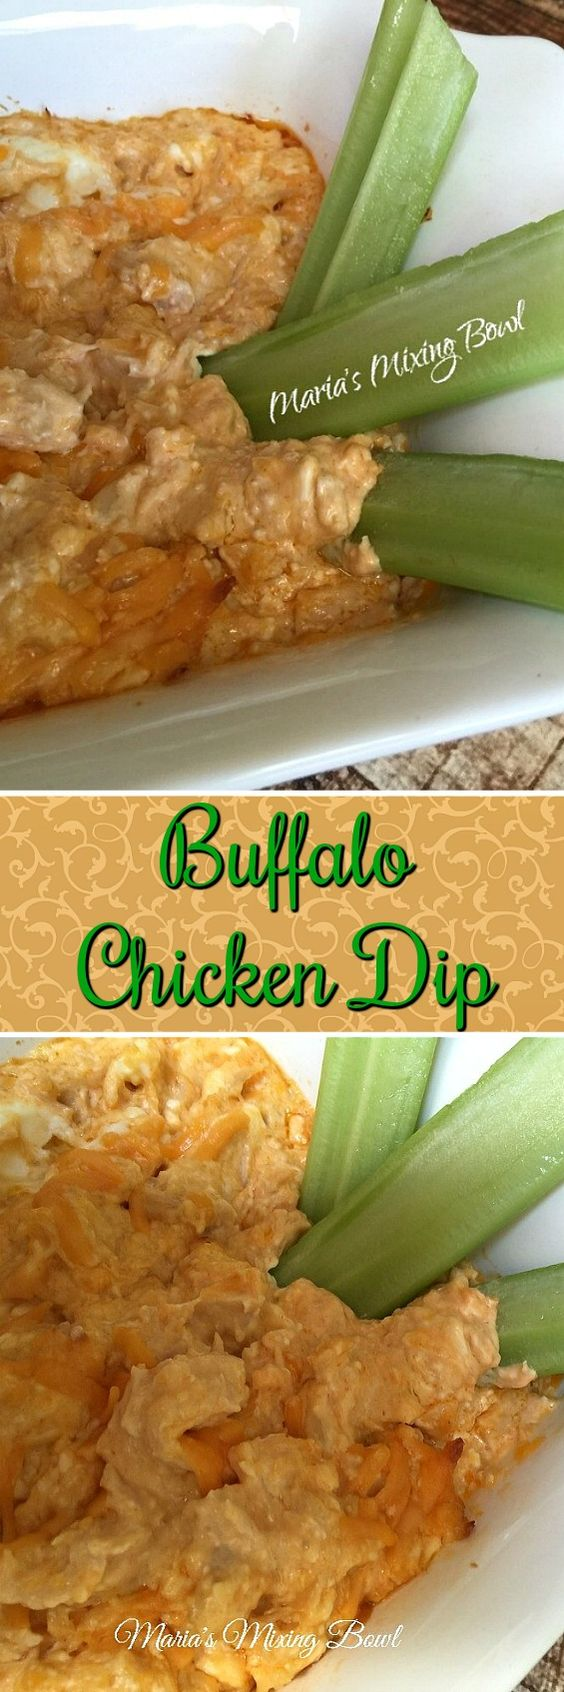 Buffalo Chicken Dip - tastes just like the buffalo chicken we love to eat but in a dip form. This creamy Buffalo Chicken Dip comes together easily and is always a big hit!